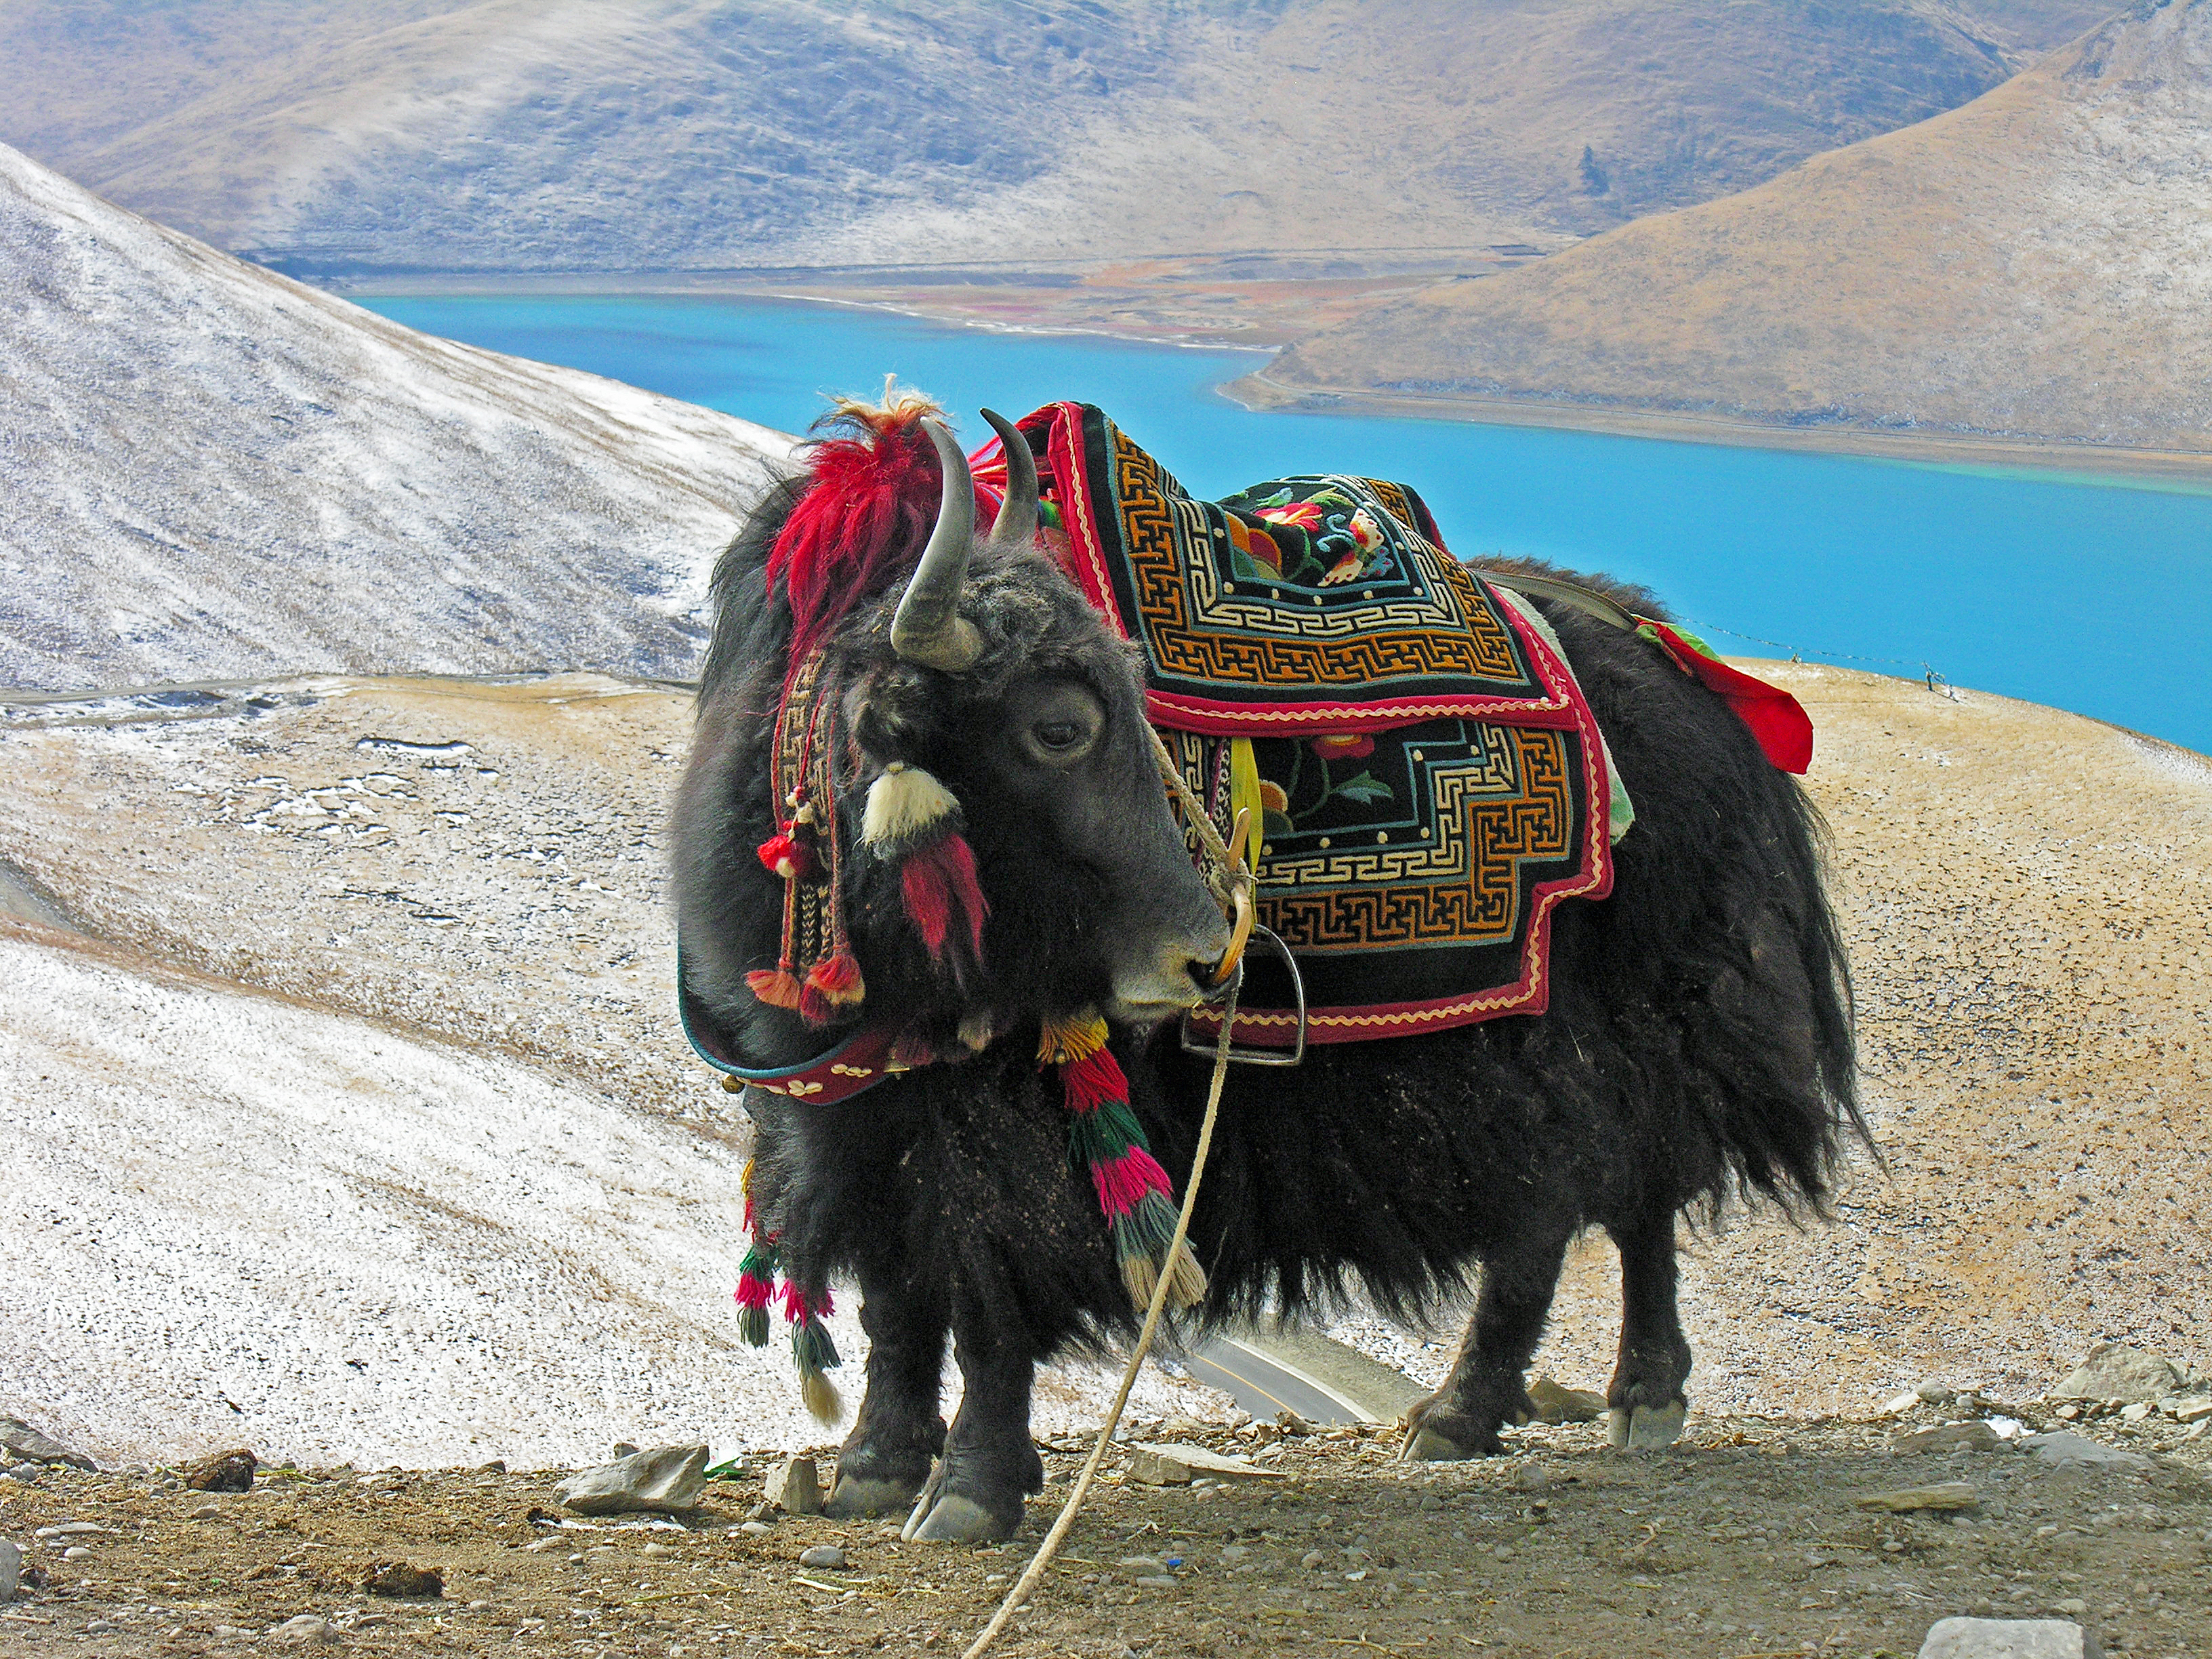 Image Of A Yak: Lizbrownlee - Poet